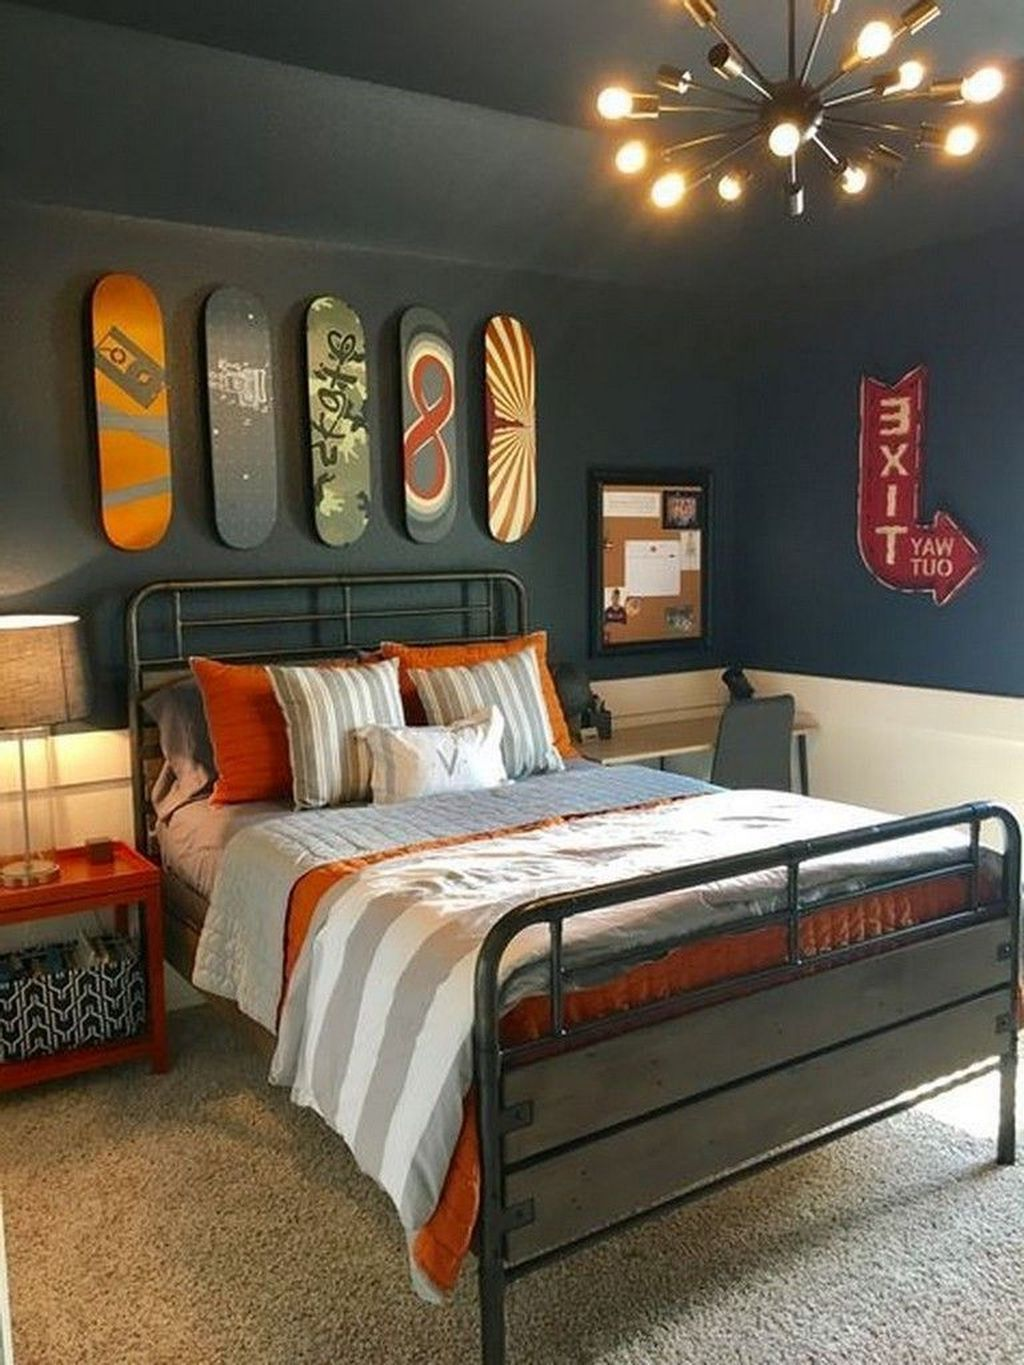 20 Affordable Bedroom Decor Ideas For Your Little Boys Trenduhome Boy Bedroom Design Boys Bedroom Colors Boys Bedroom Decor